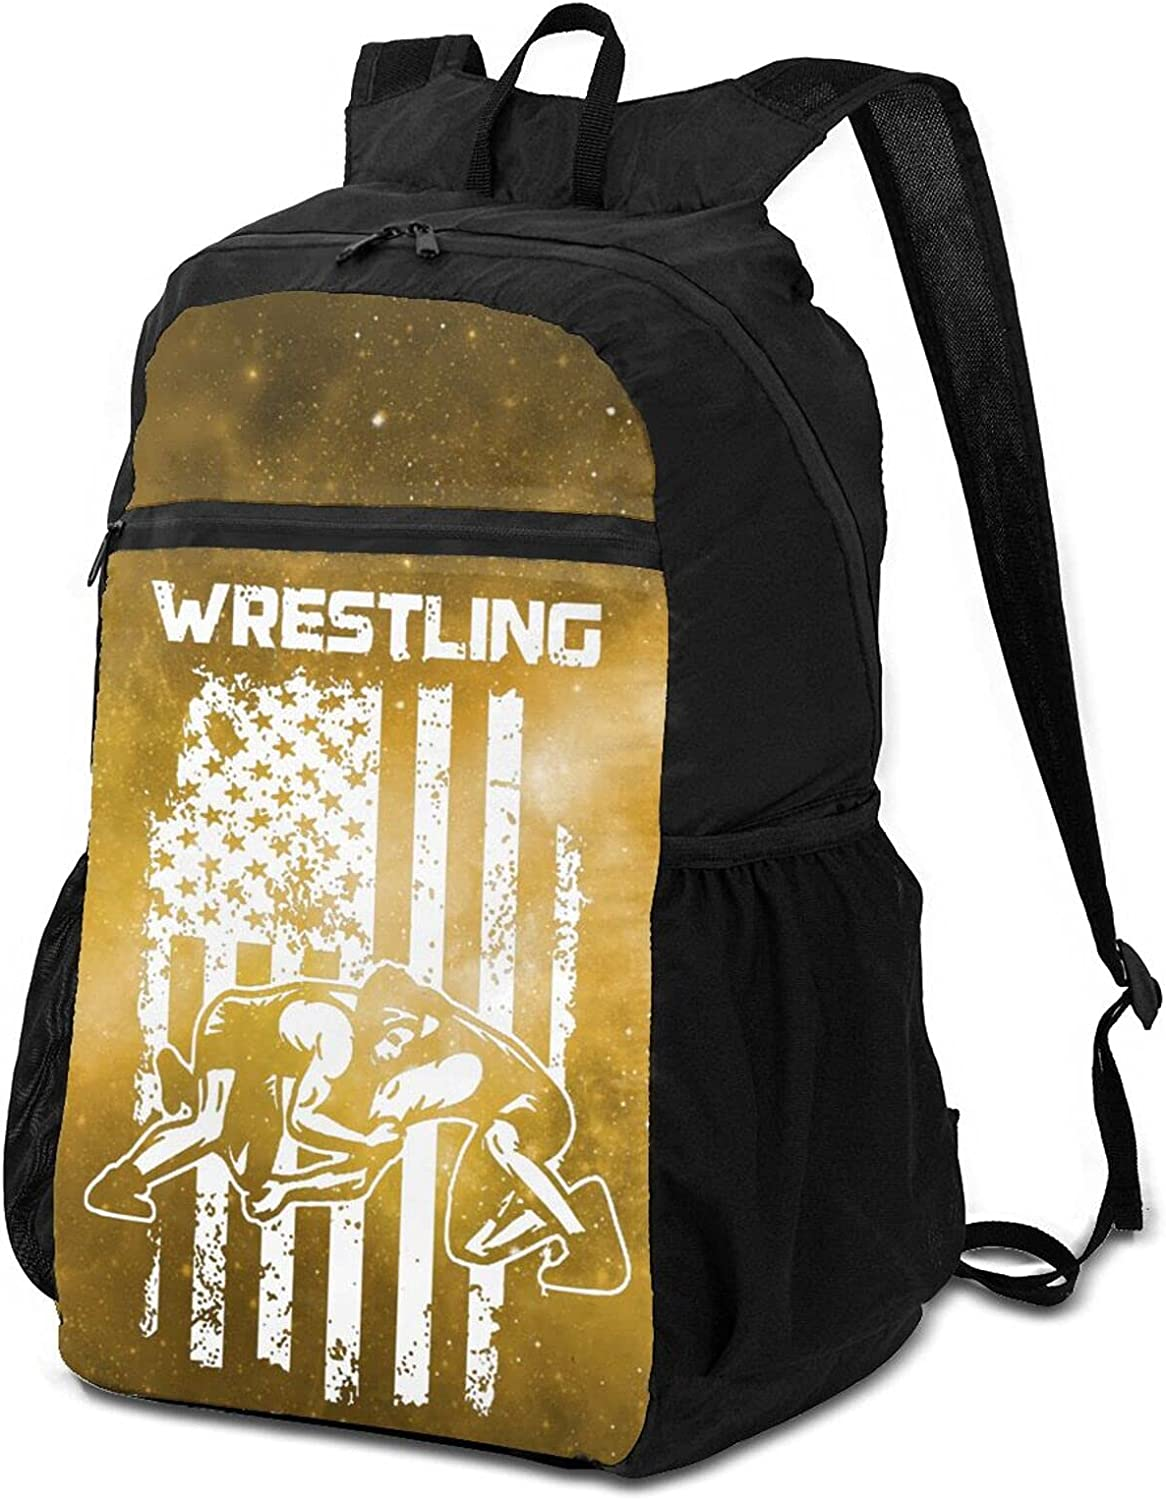 Usa Wres-Tling Fashion Classic Great interest Max 73% OFF Day Packable Lightweight Backpack